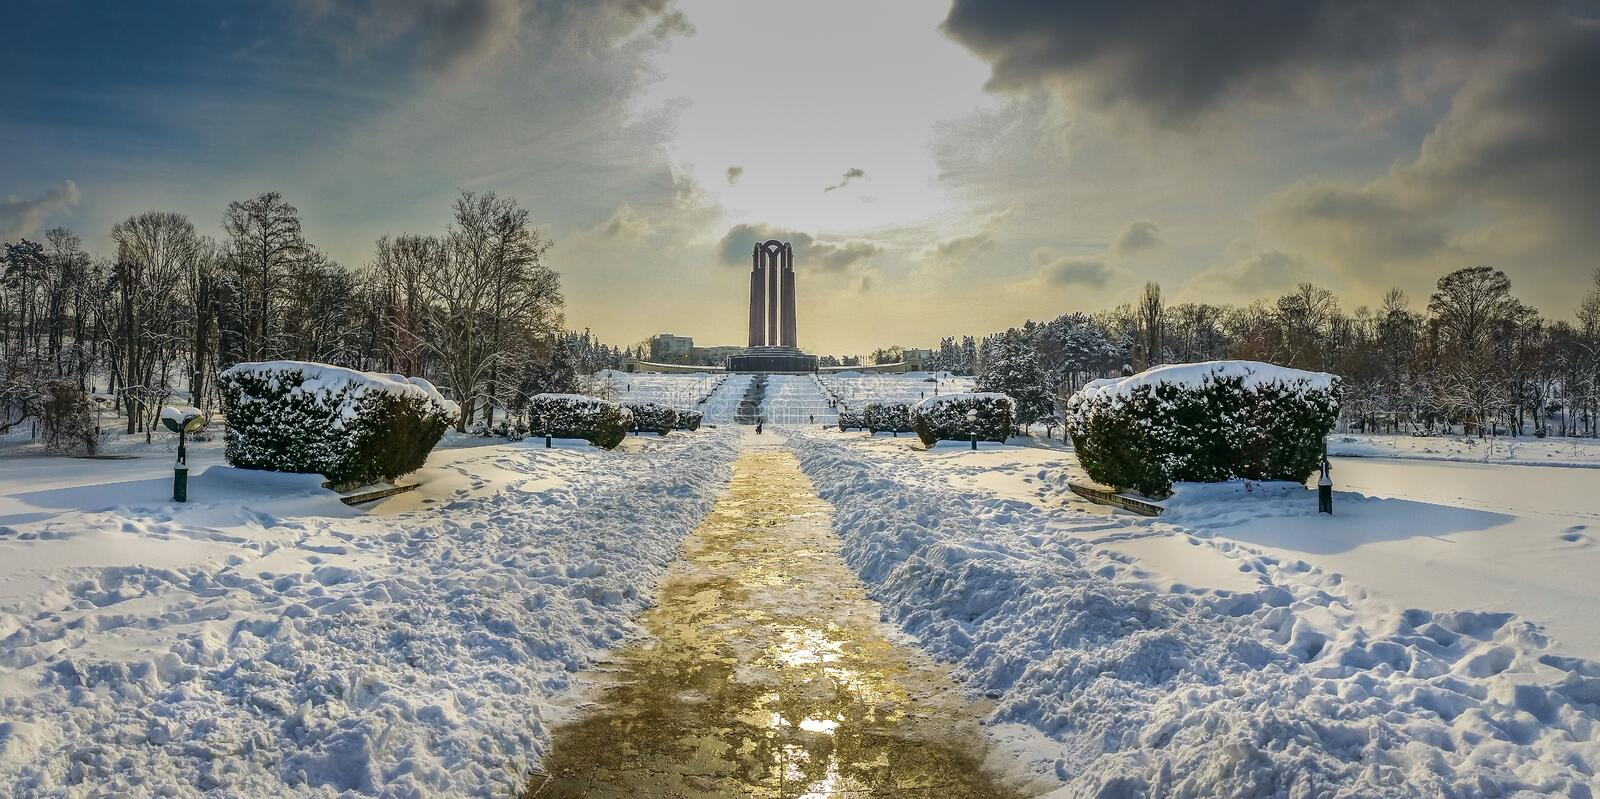 overfiltered artistic landscape panorama in Carol Park from Bucharest stock photos